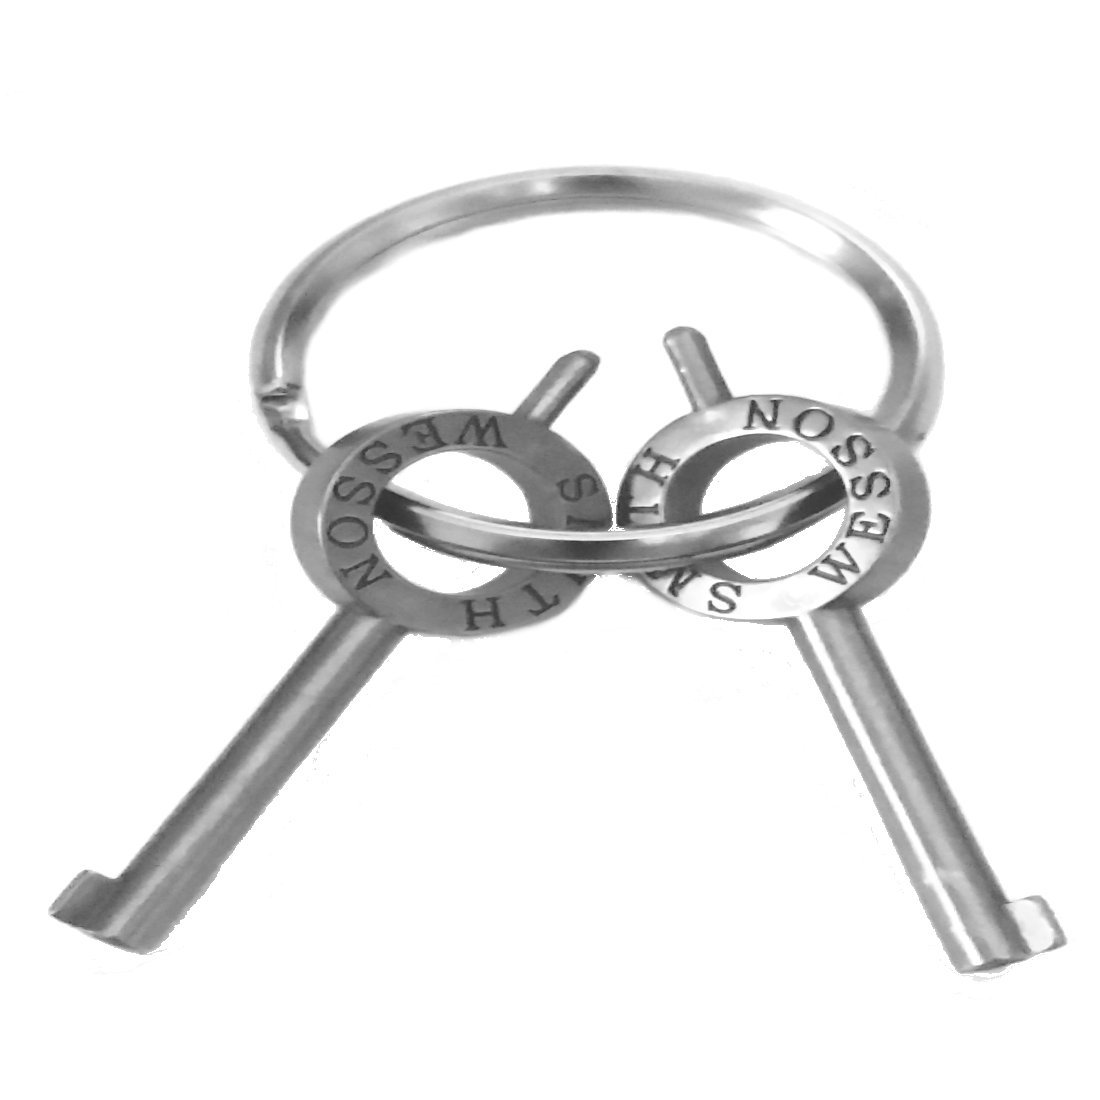 2 Authentic Smith & Wesson Handcuff Key for S&W Models 100, 300, 1850, 1900 with Key Ring